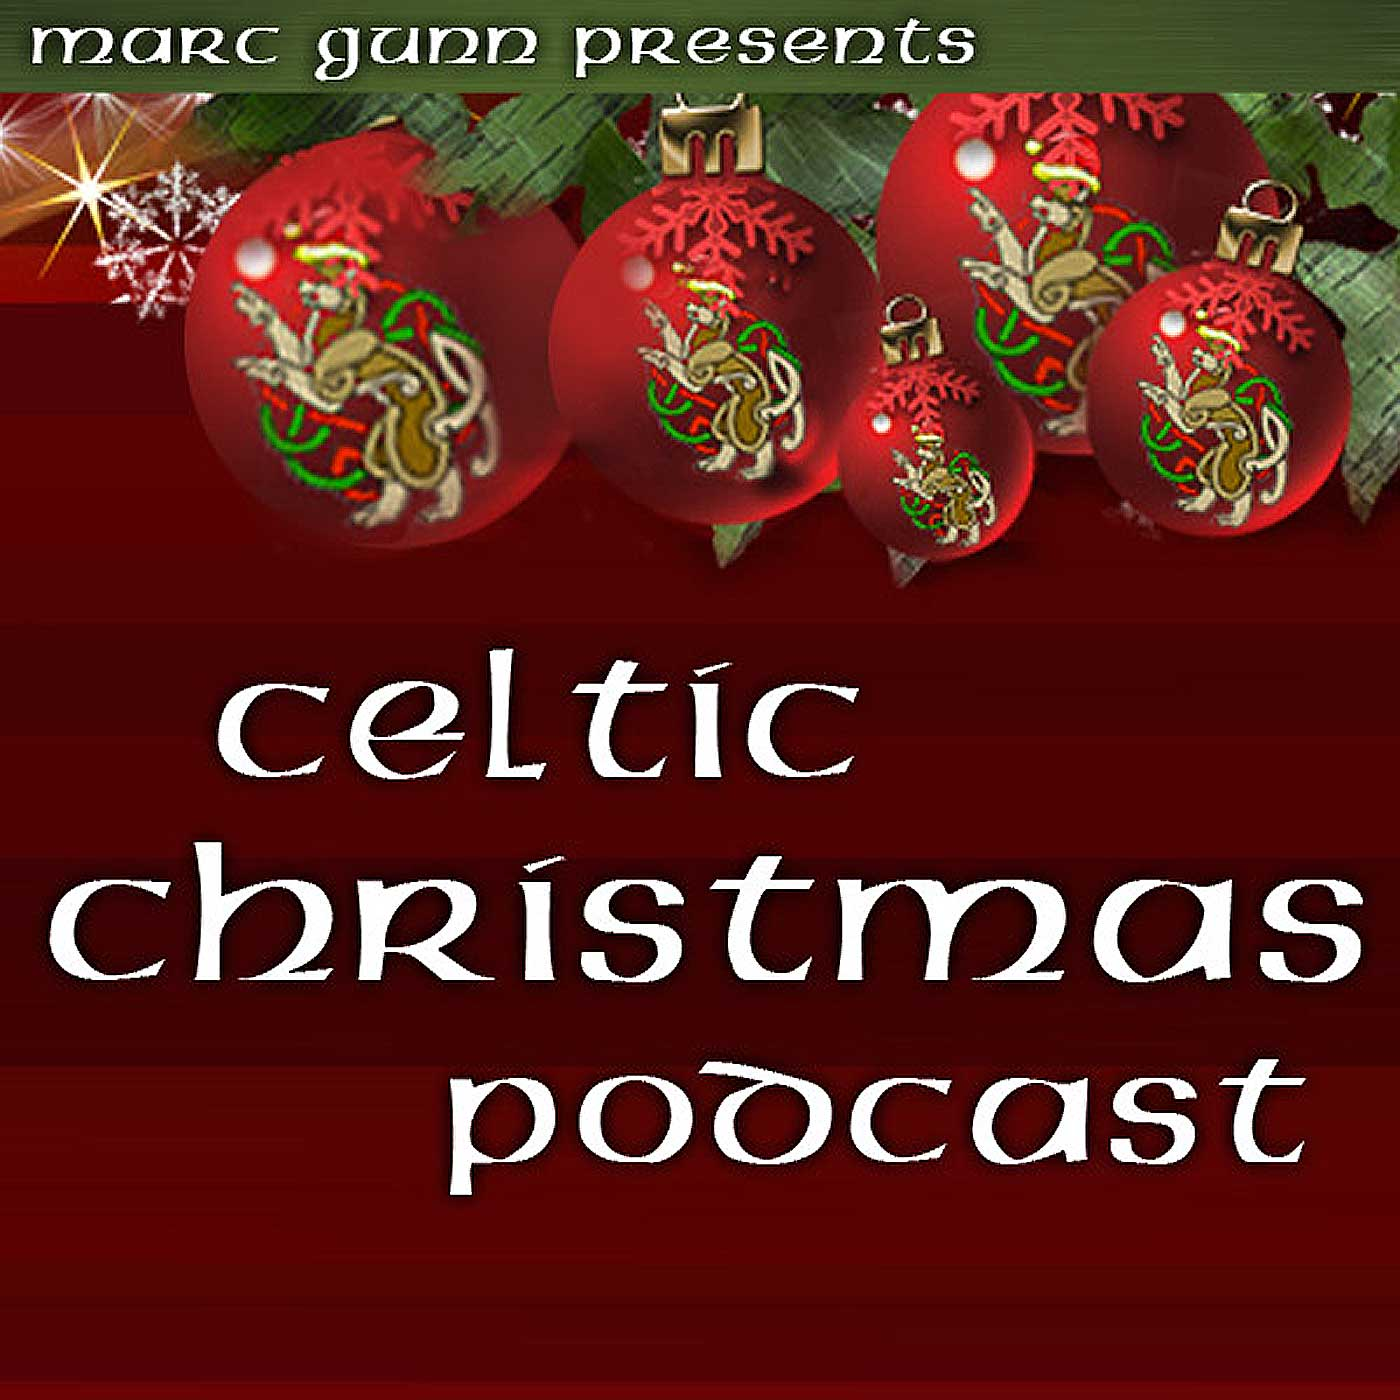 Irish Christmas Traditions.Irish Christmas Traditions 20 With Engaging Ireland Podcast